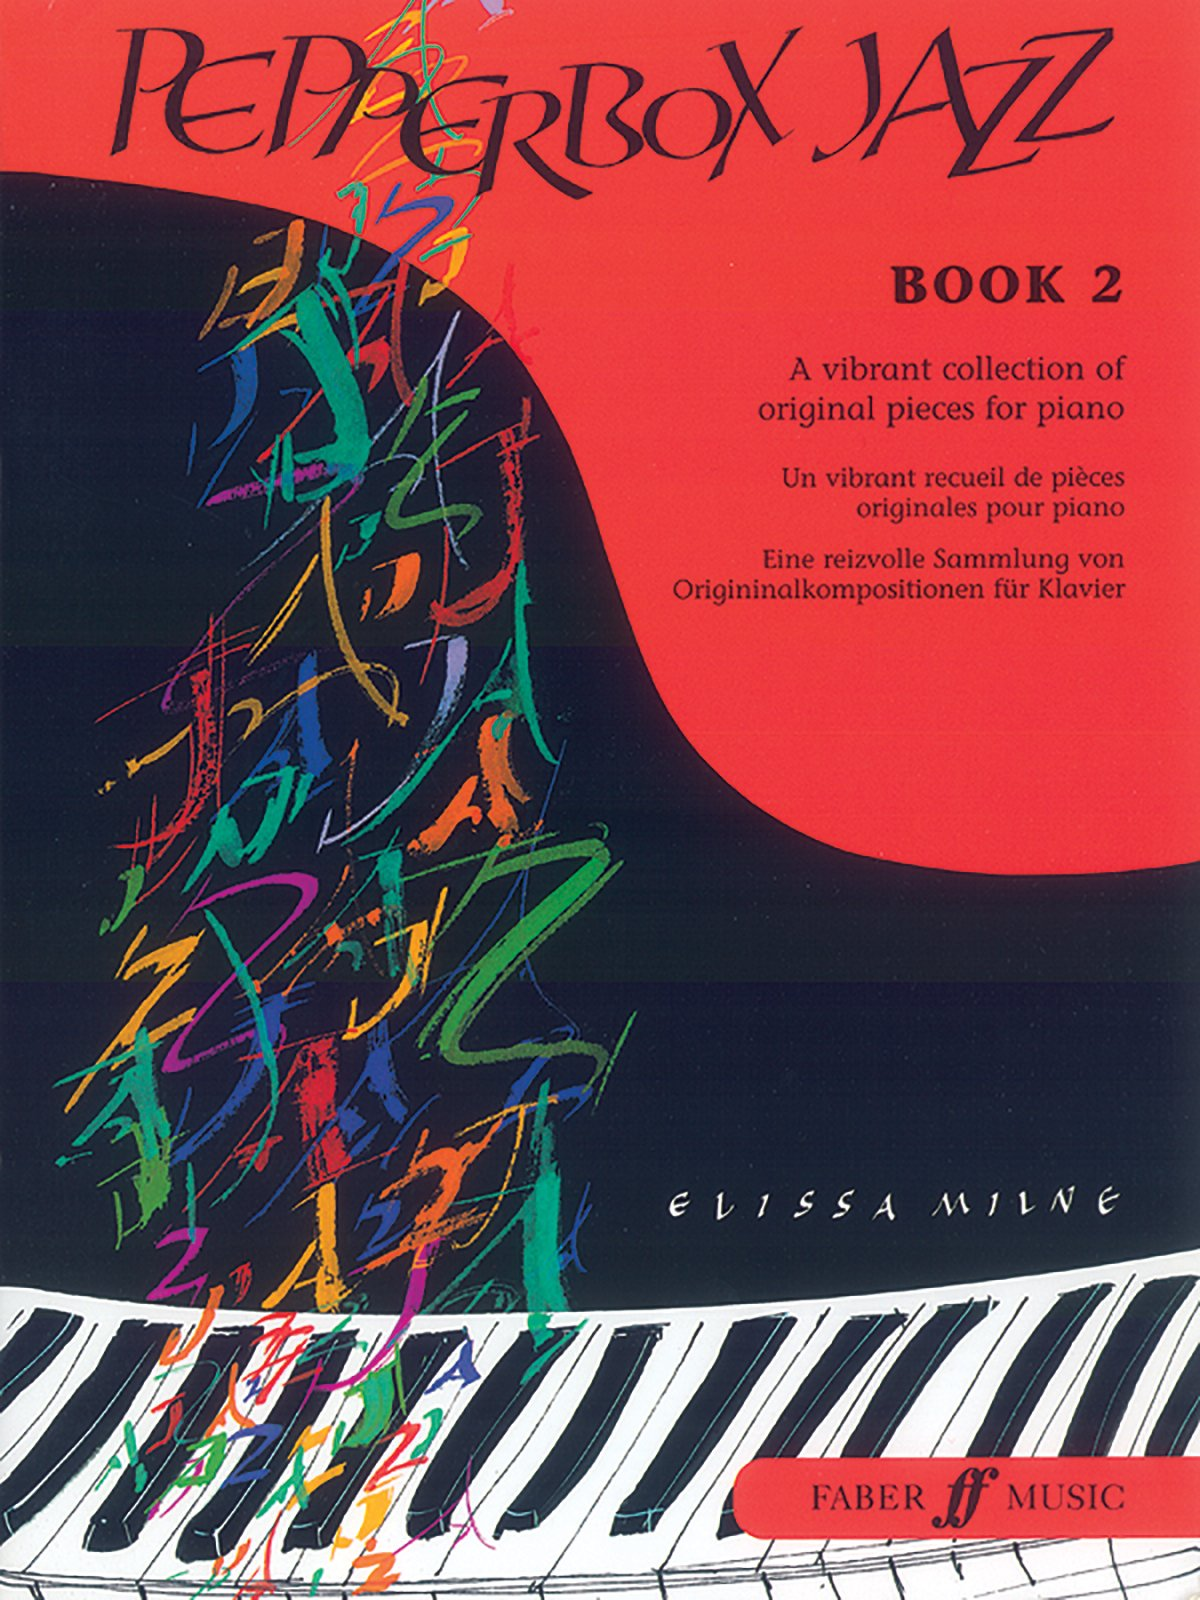 Pepperbox Jazz, Bk 2: A Vibrant Collection of Original Pieces for Piano (Faber Edition: Little Peppers) ebook